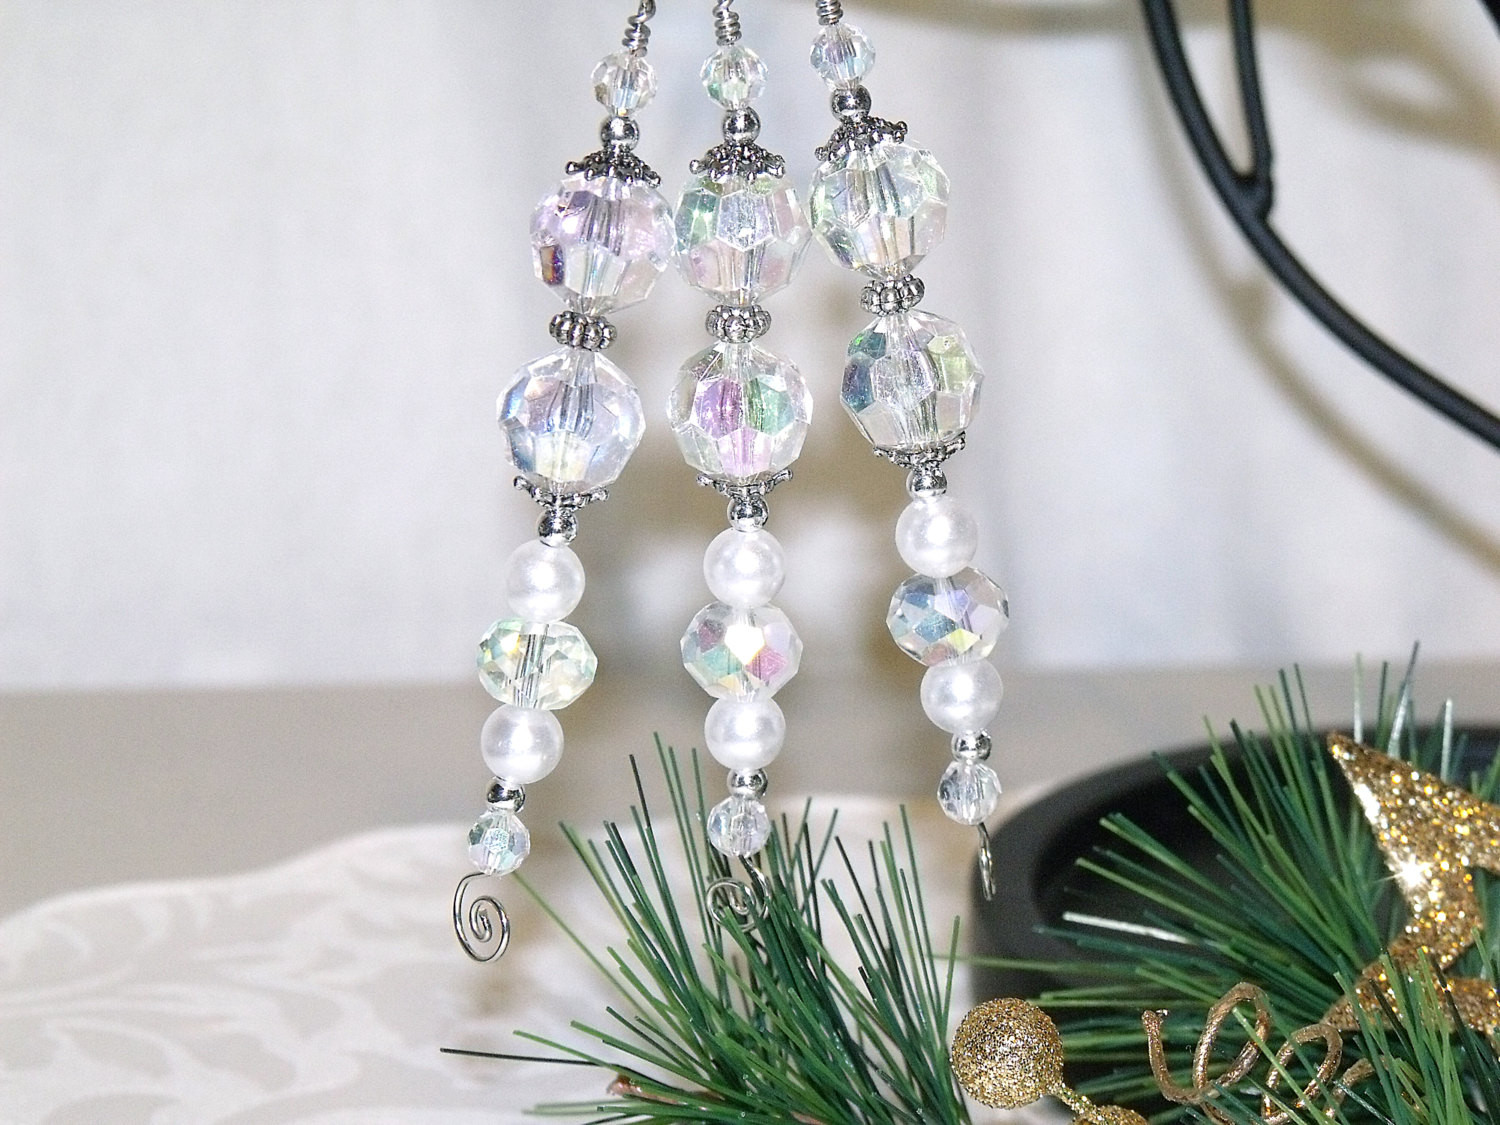 White Christmas ornaments Best Of White Christmas Icicle ornaments Bead ornaments Tree Of Attractive 44 Images White Christmas ornaments